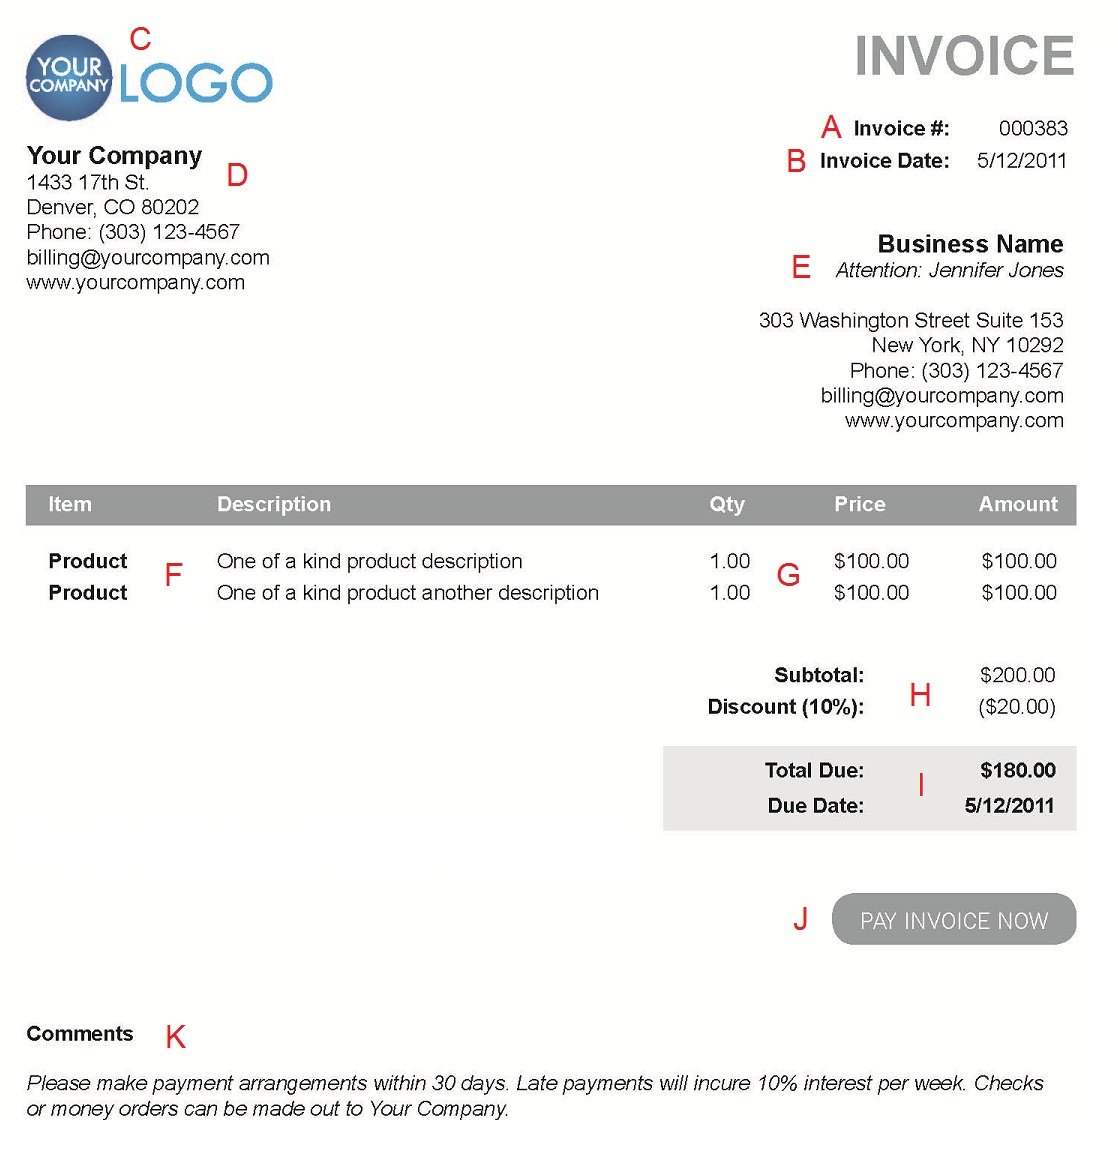 Opposenewapstandardsus  Terrific The  Different Sections Of An Electronic Payment Invoice With Engaging A  With Captivating Recurring Invoice Paypal Also How To Find Vehicle Invoice Price In Addition Difference Between Dealer Invoice And Msrp And Best Free Online Invoicing As Well As Generate Invoices Additionally Sample Word Invoice From Paysimplecom With Opposenewapstandardsus  Engaging The  Different Sections Of An Electronic Payment Invoice With Captivating A  And Terrific Recurring Invoice Paypal Also How To Find Vehicle Invoice Price In Addition Difference Between Dealer Invoice And Msrp From Paysimplecom